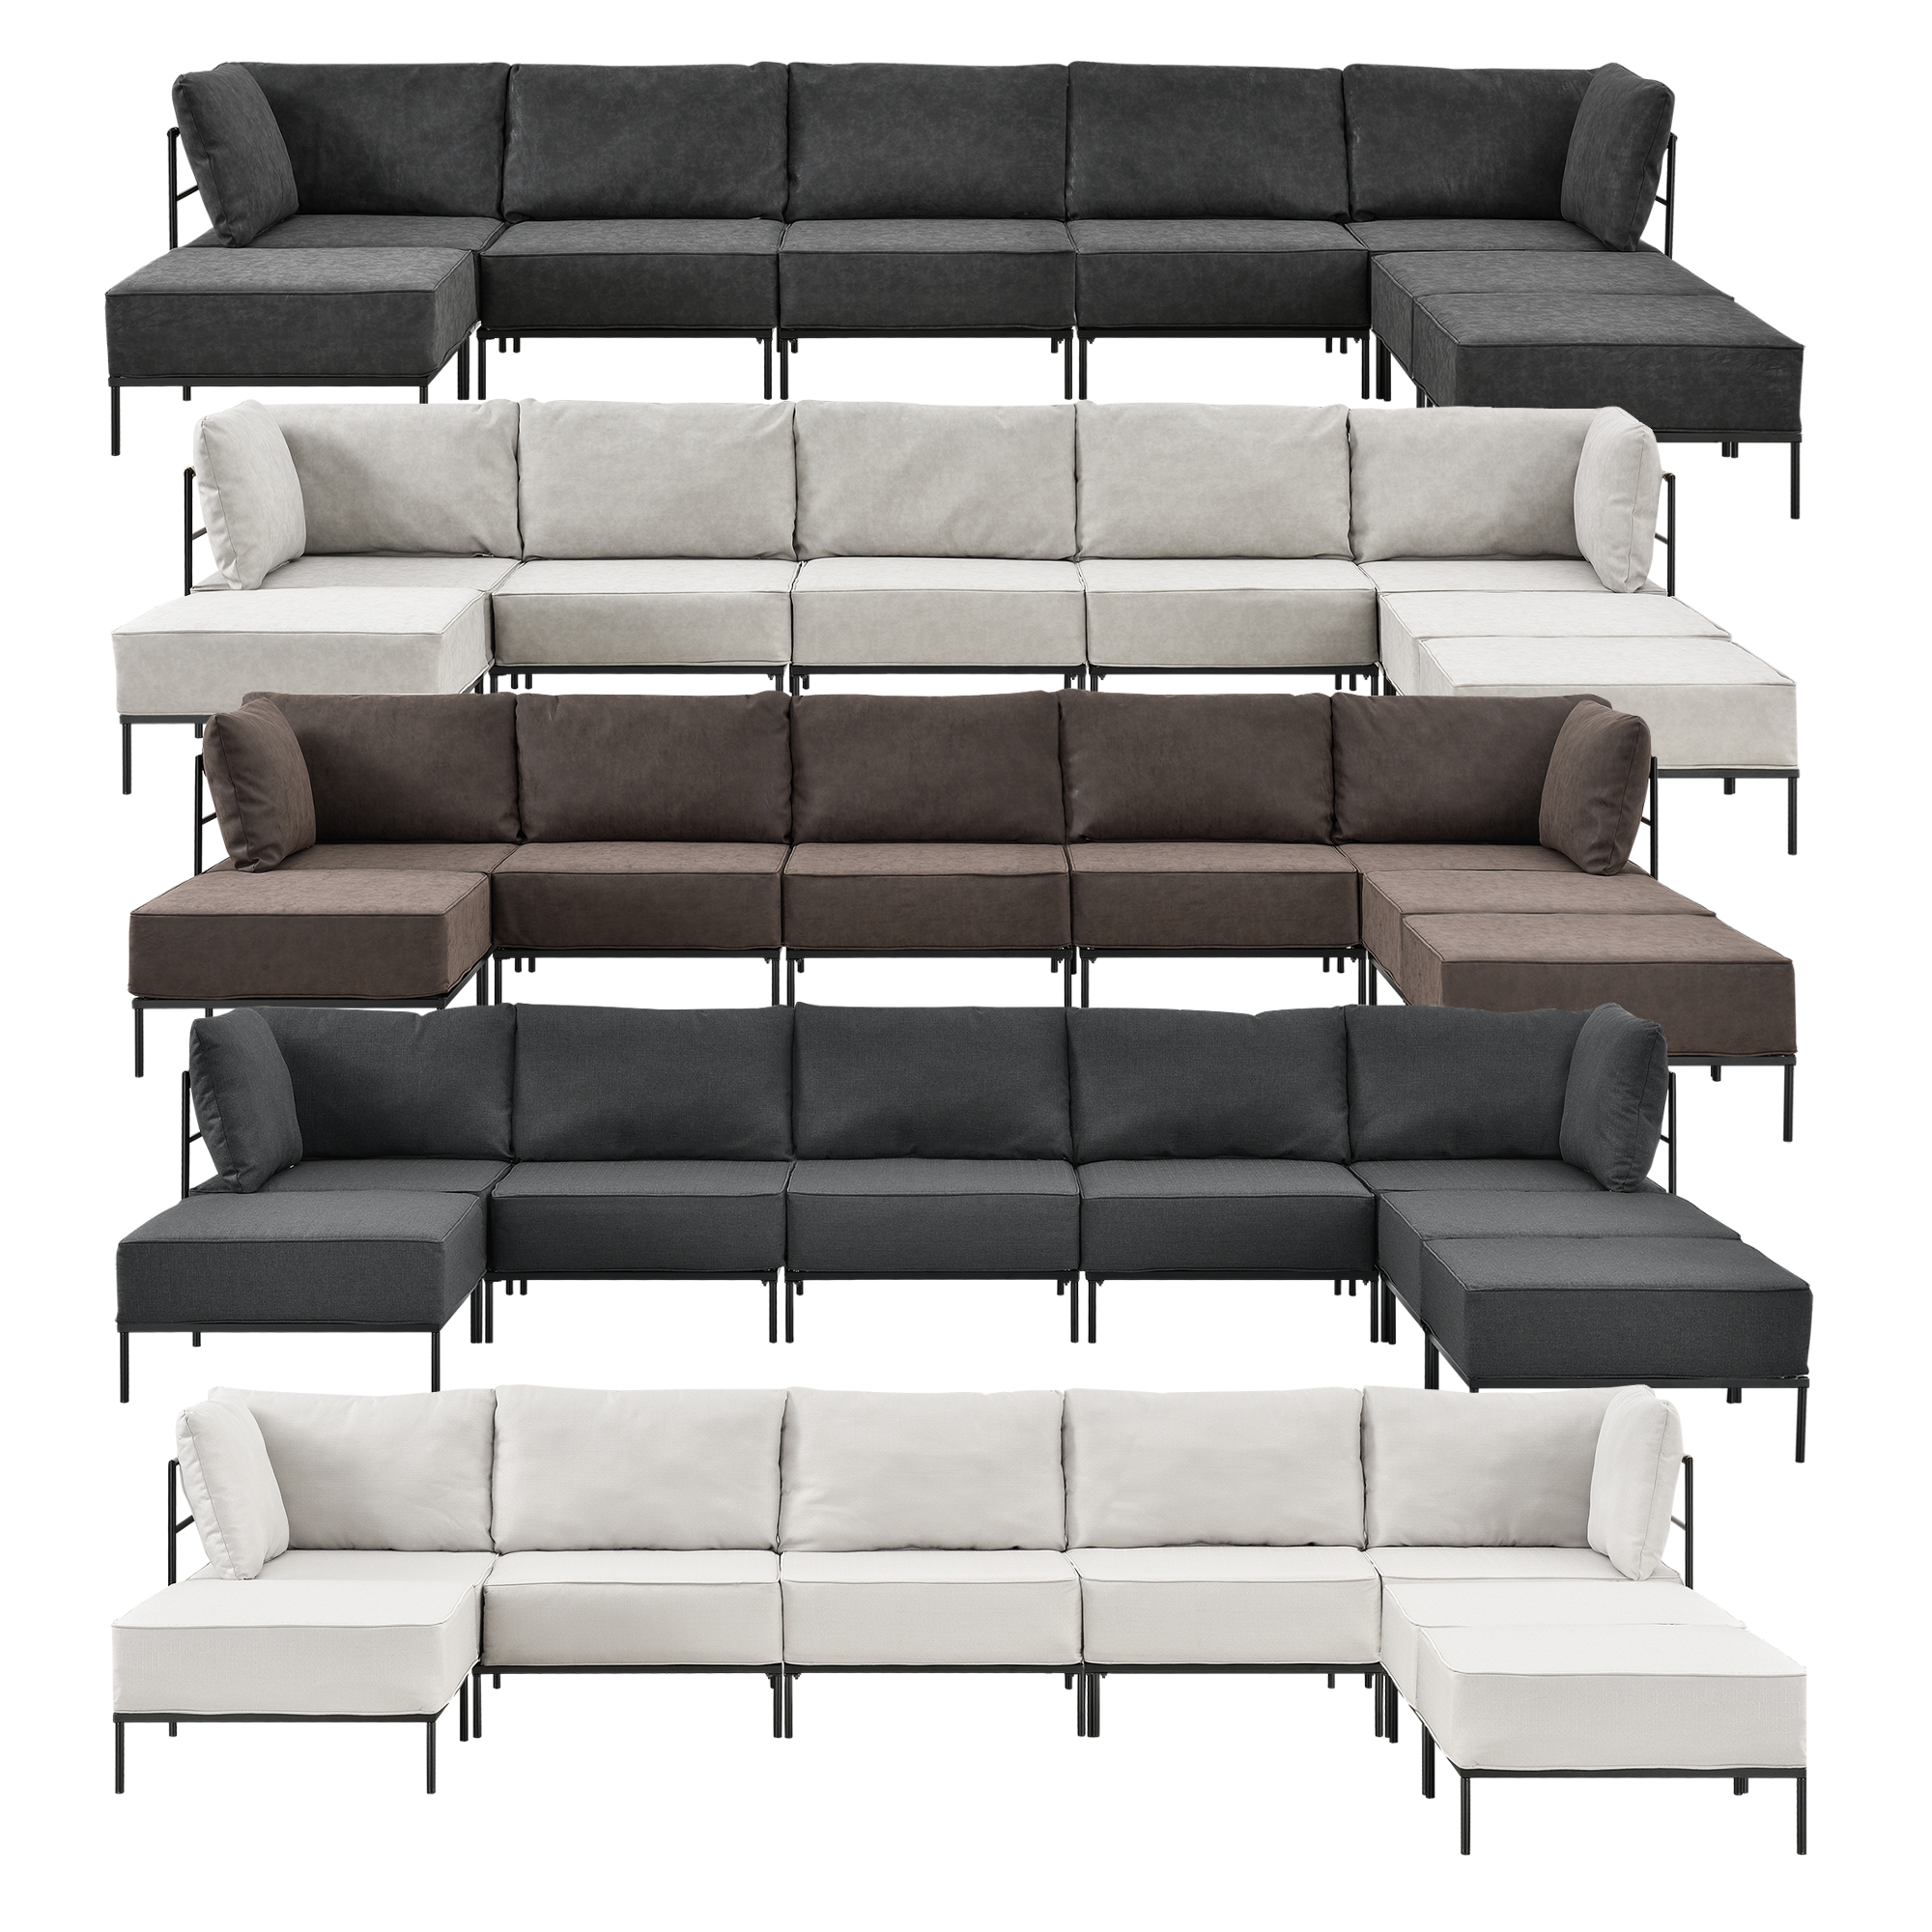 Sofa couch sessel polstergarnitur for Wohnlandschaft 8 personen